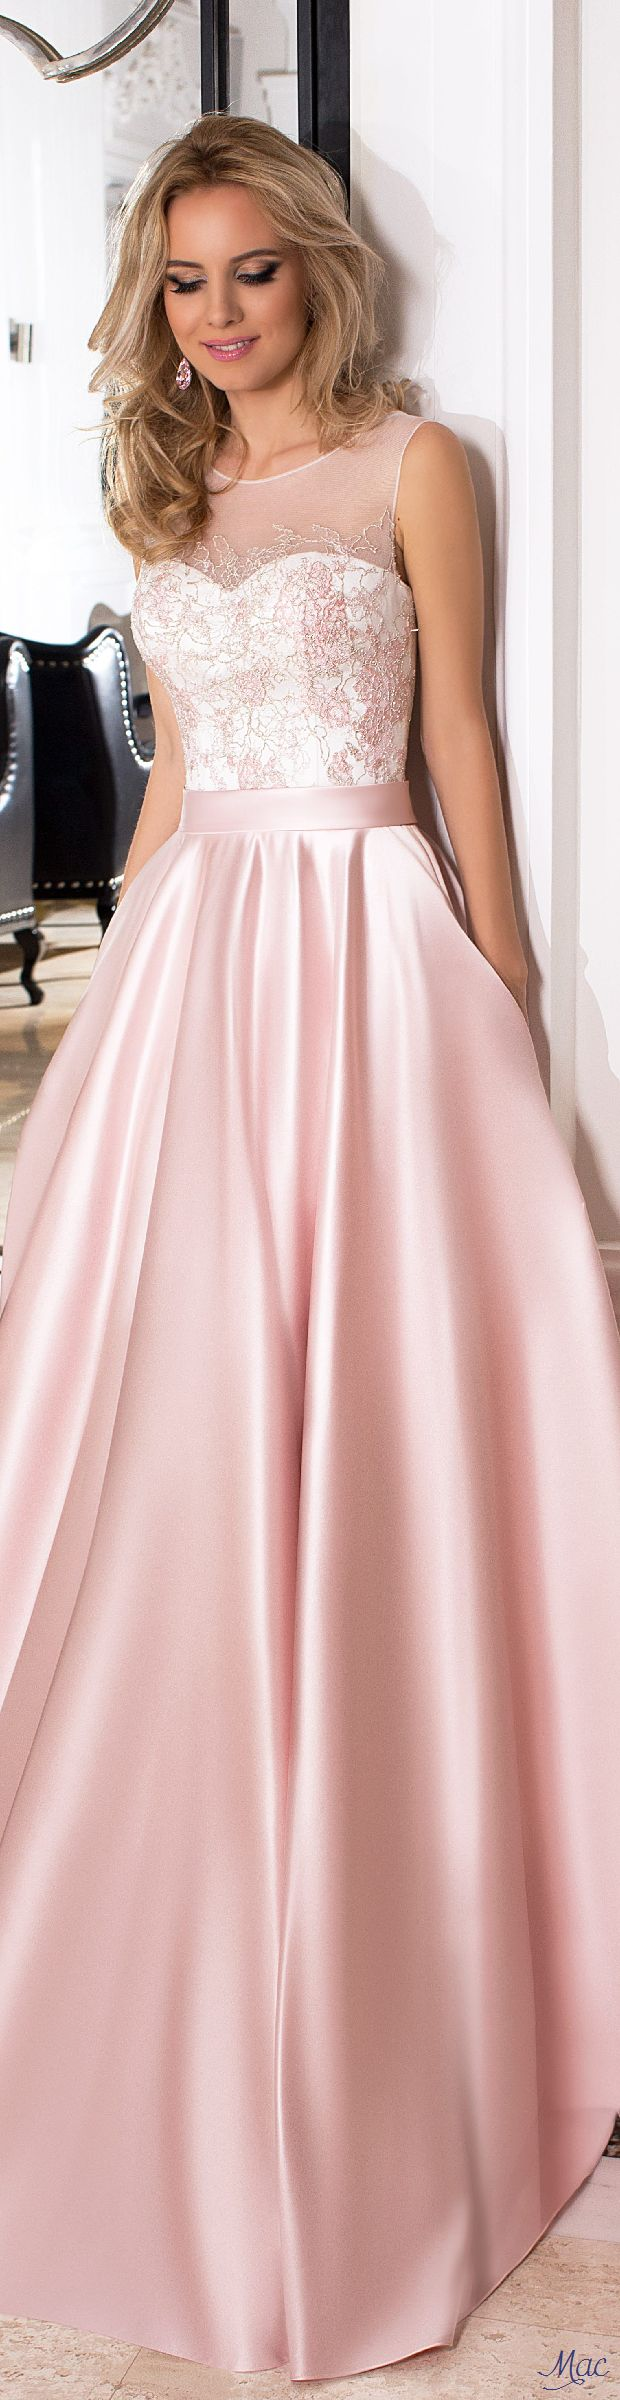 607 best Pretty in Pink images on Pinterest | Ball gowns, Grad ...